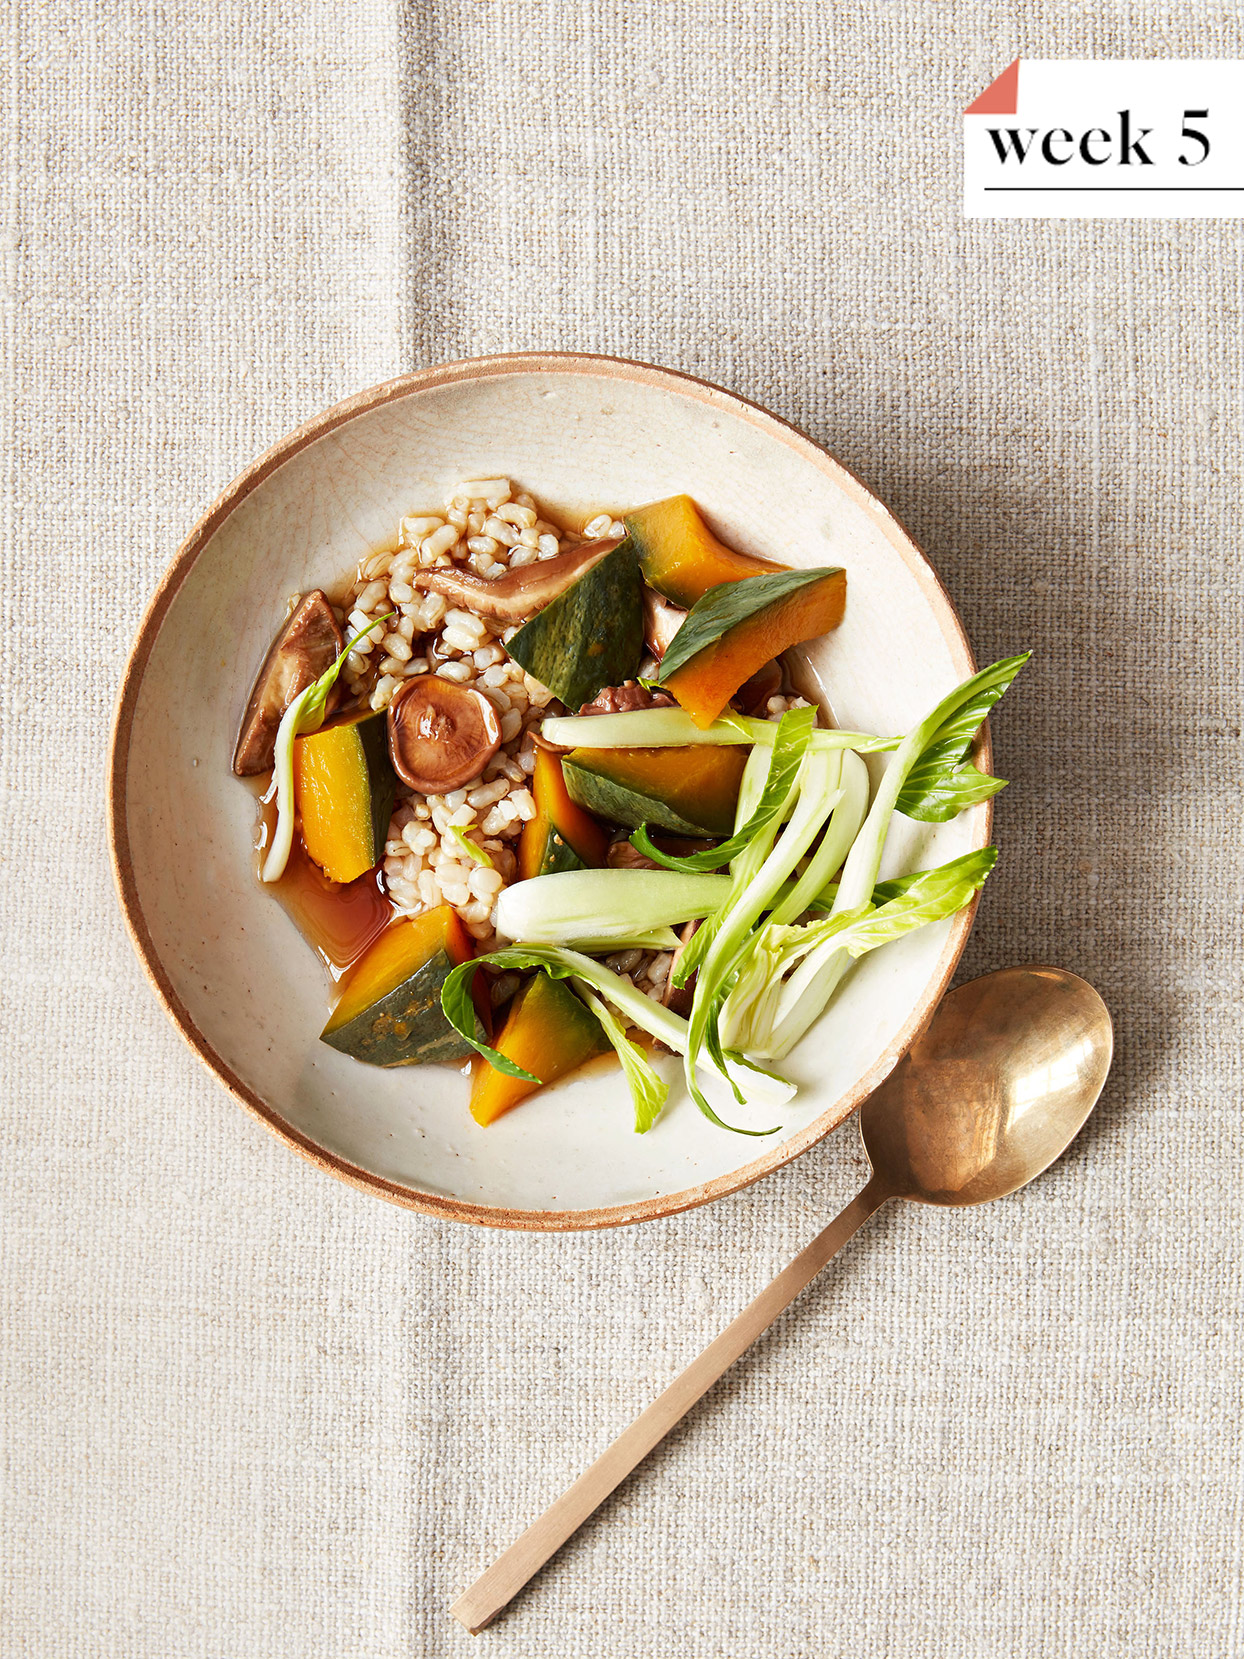 Brown-Rice Bowl with Kabocha Squash and Shiitakes